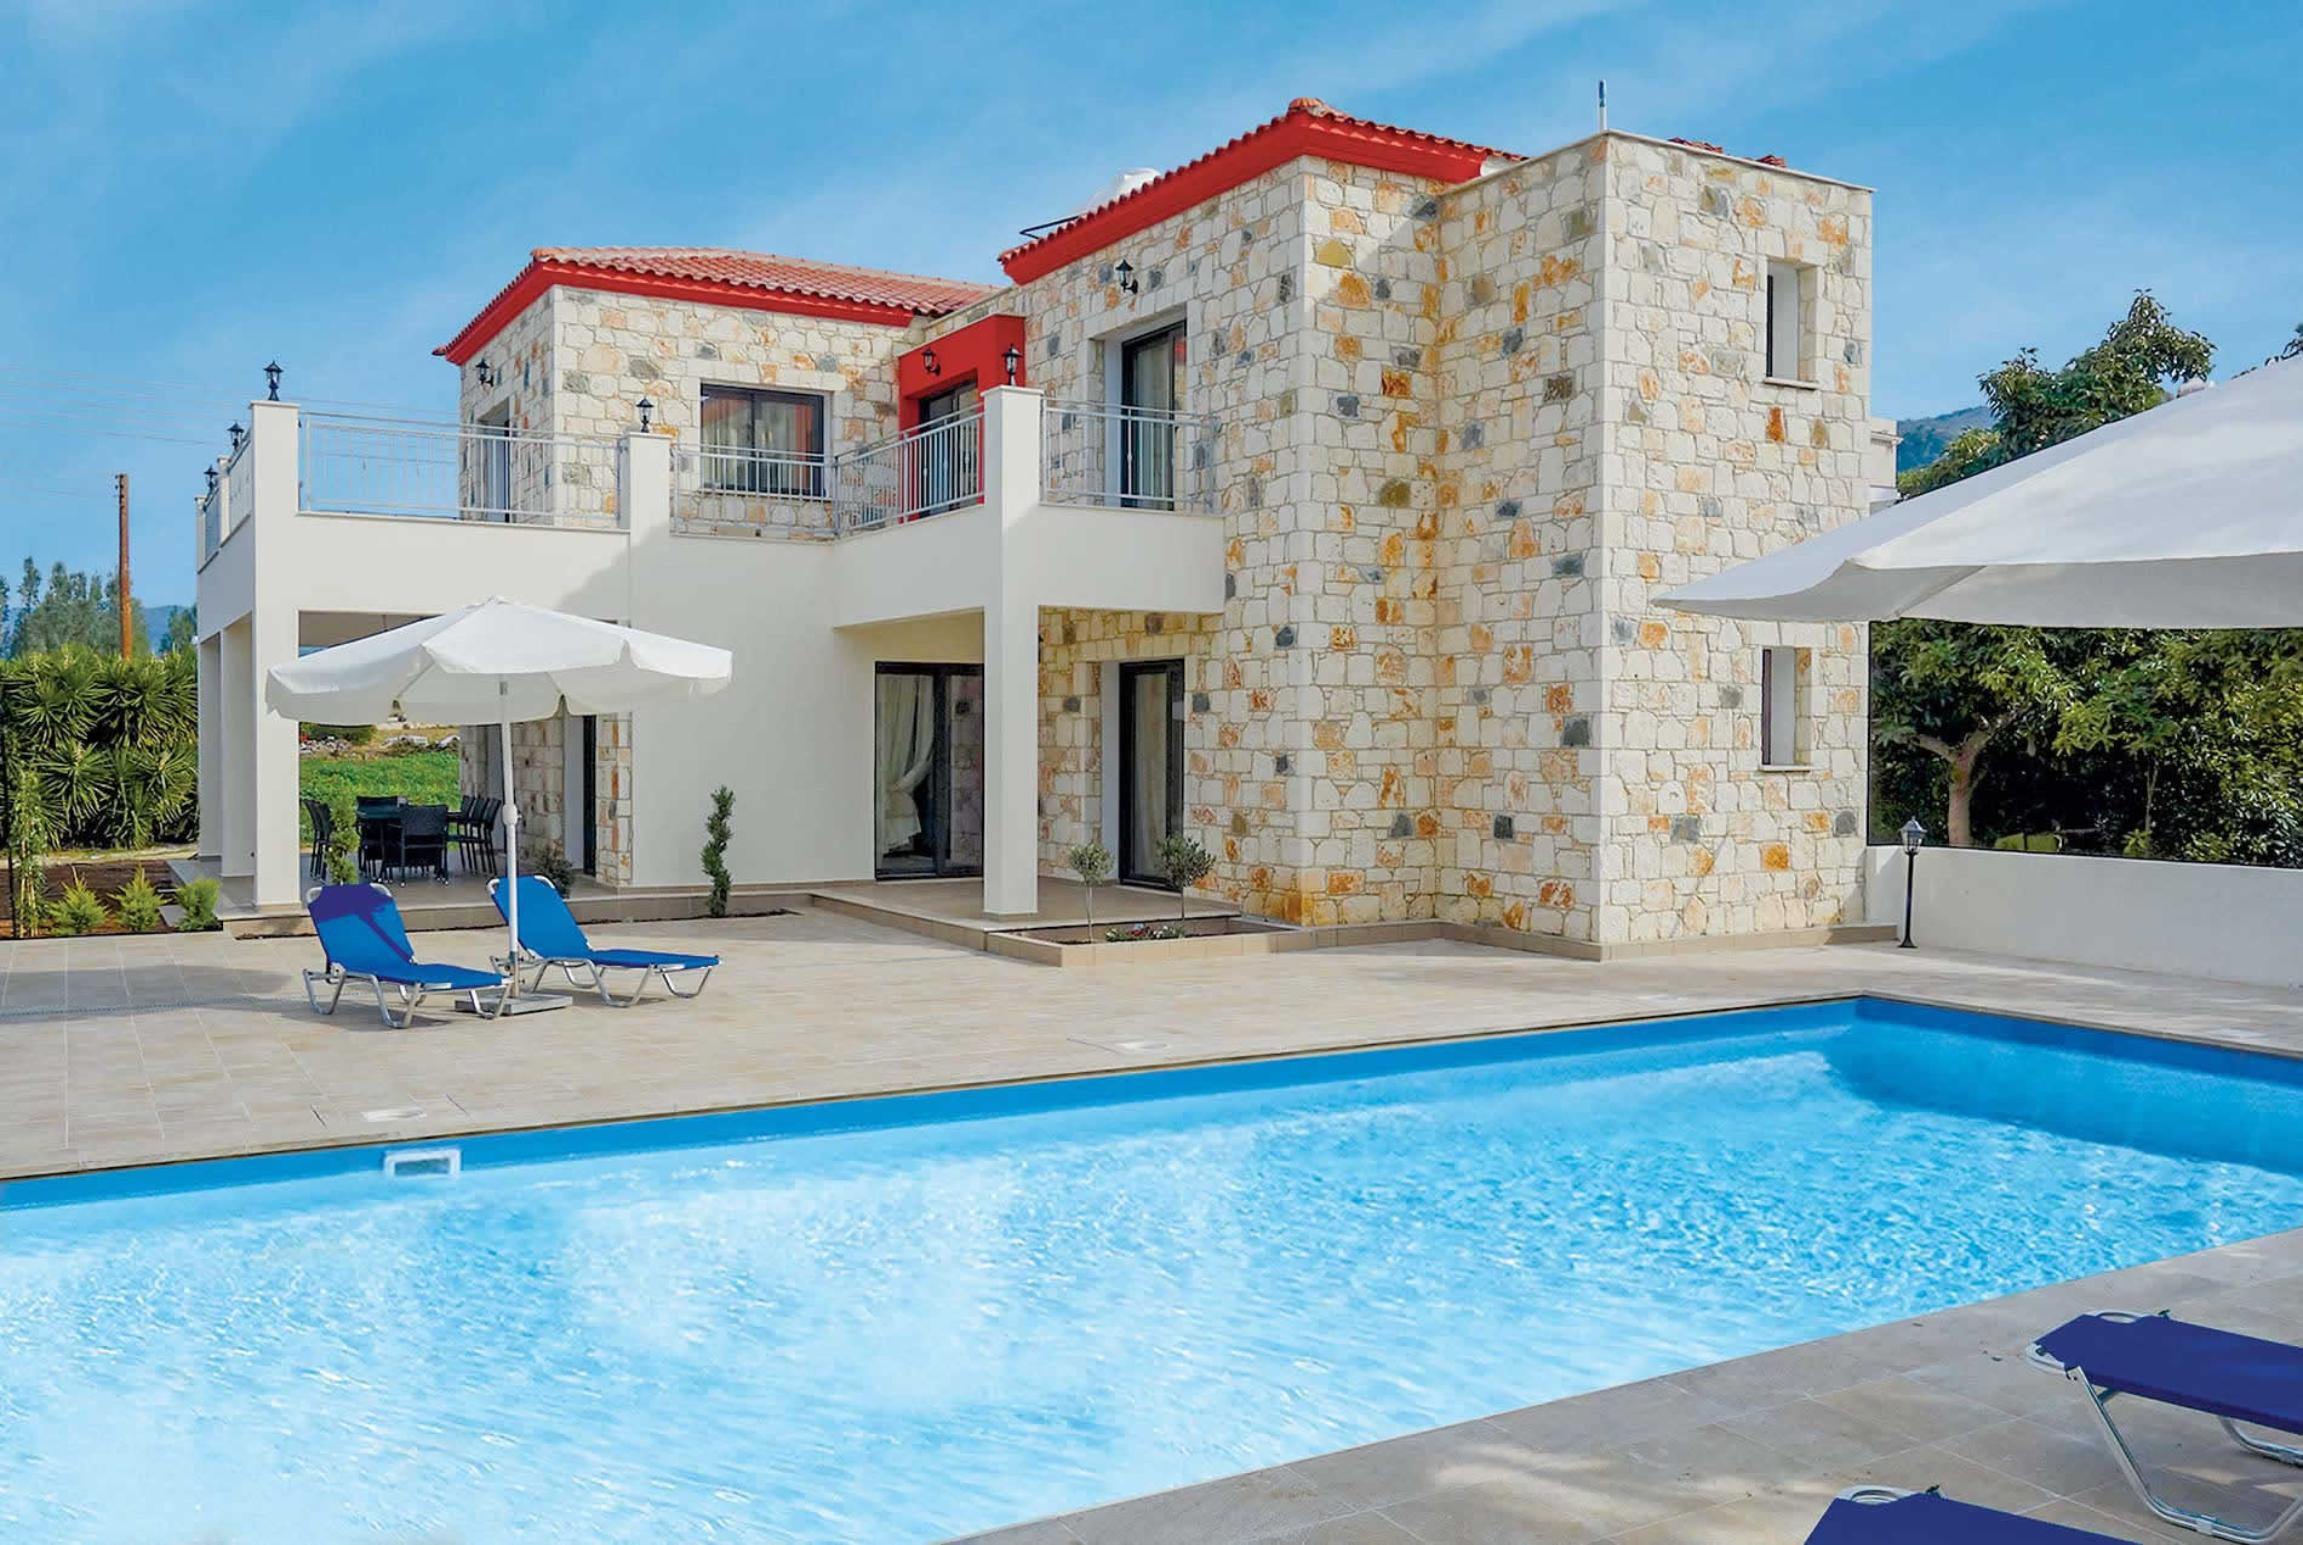 Read more about Deborahs Villa villa